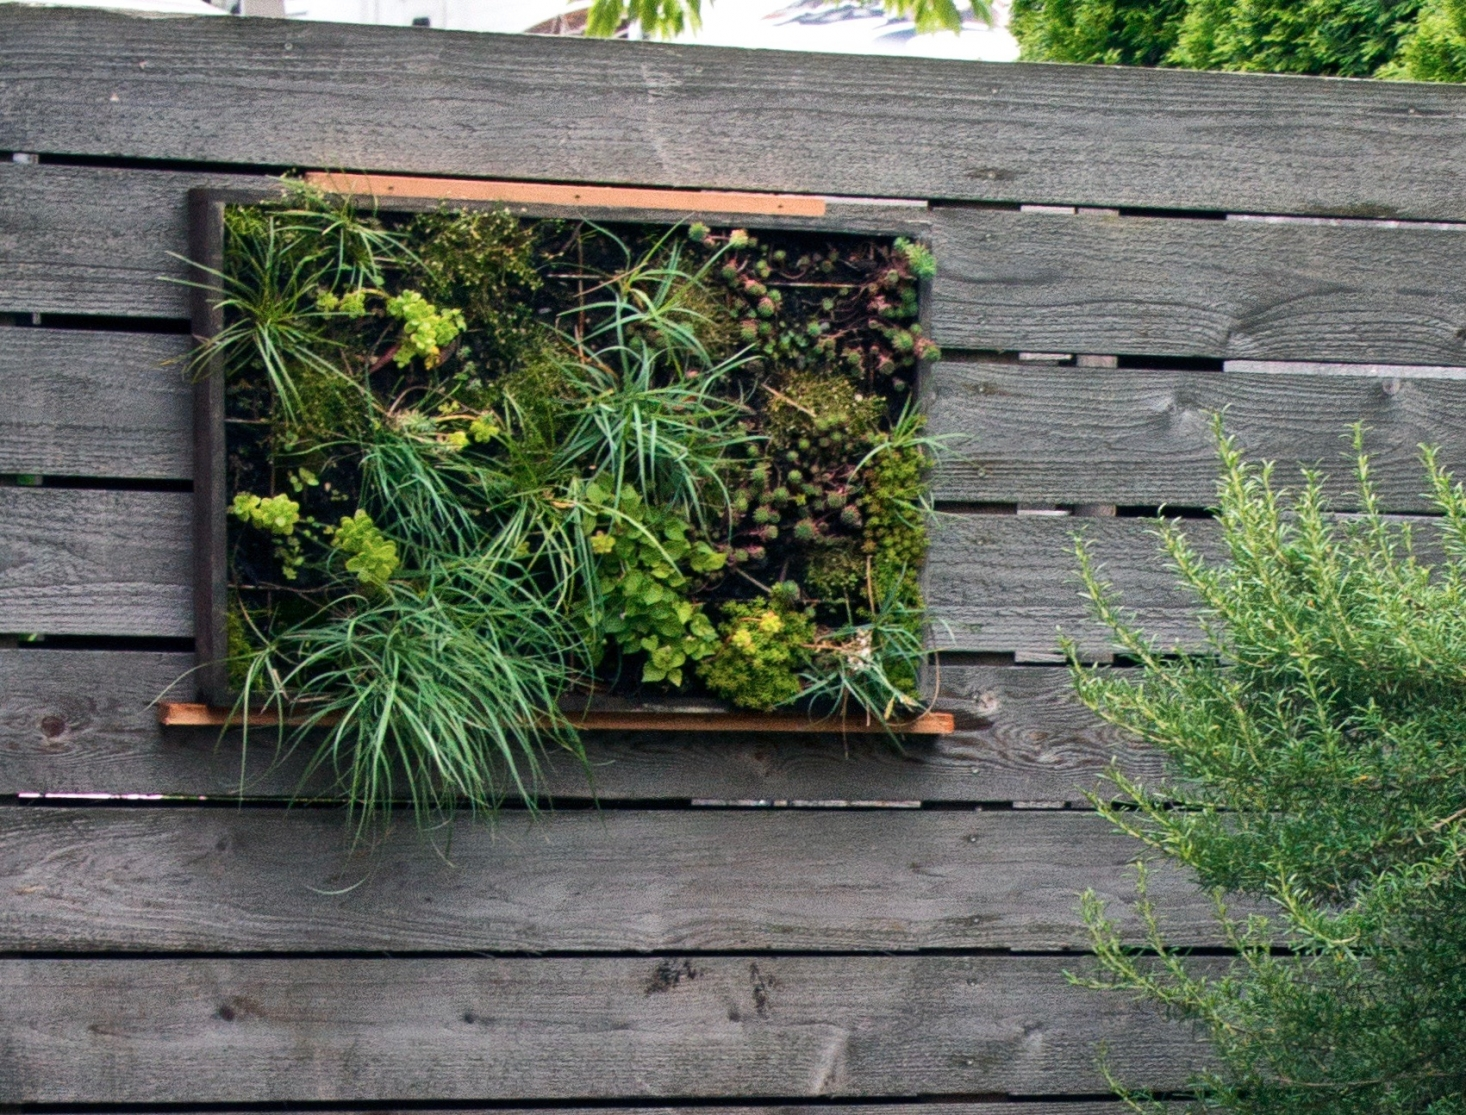 create a succulent vertical garden as an artwork and part of landscaping, it won't take much space